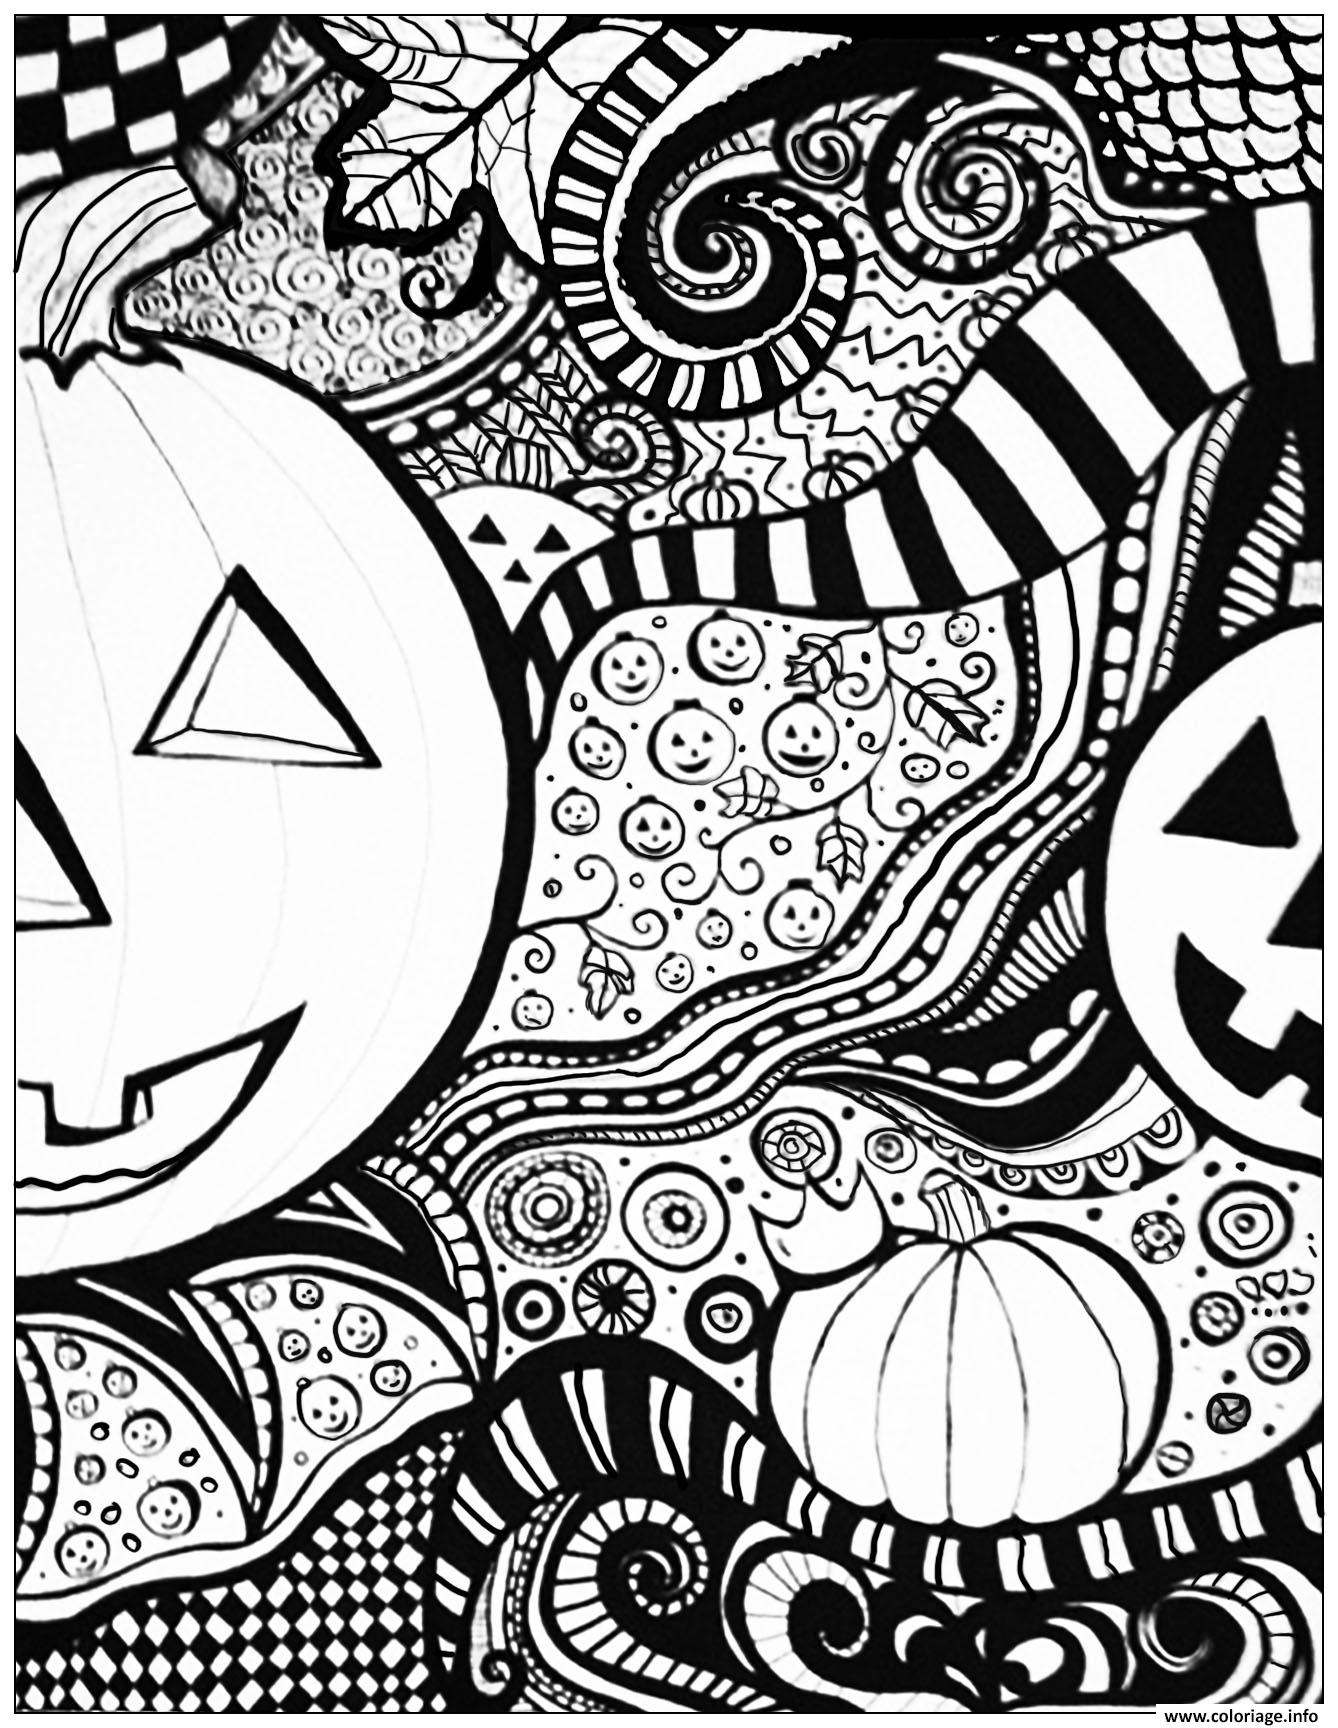 Coloriage Adulte A Imprimer Difficile.Coloriage Adulte Halloween Pattern Difficile Jecolorie Com